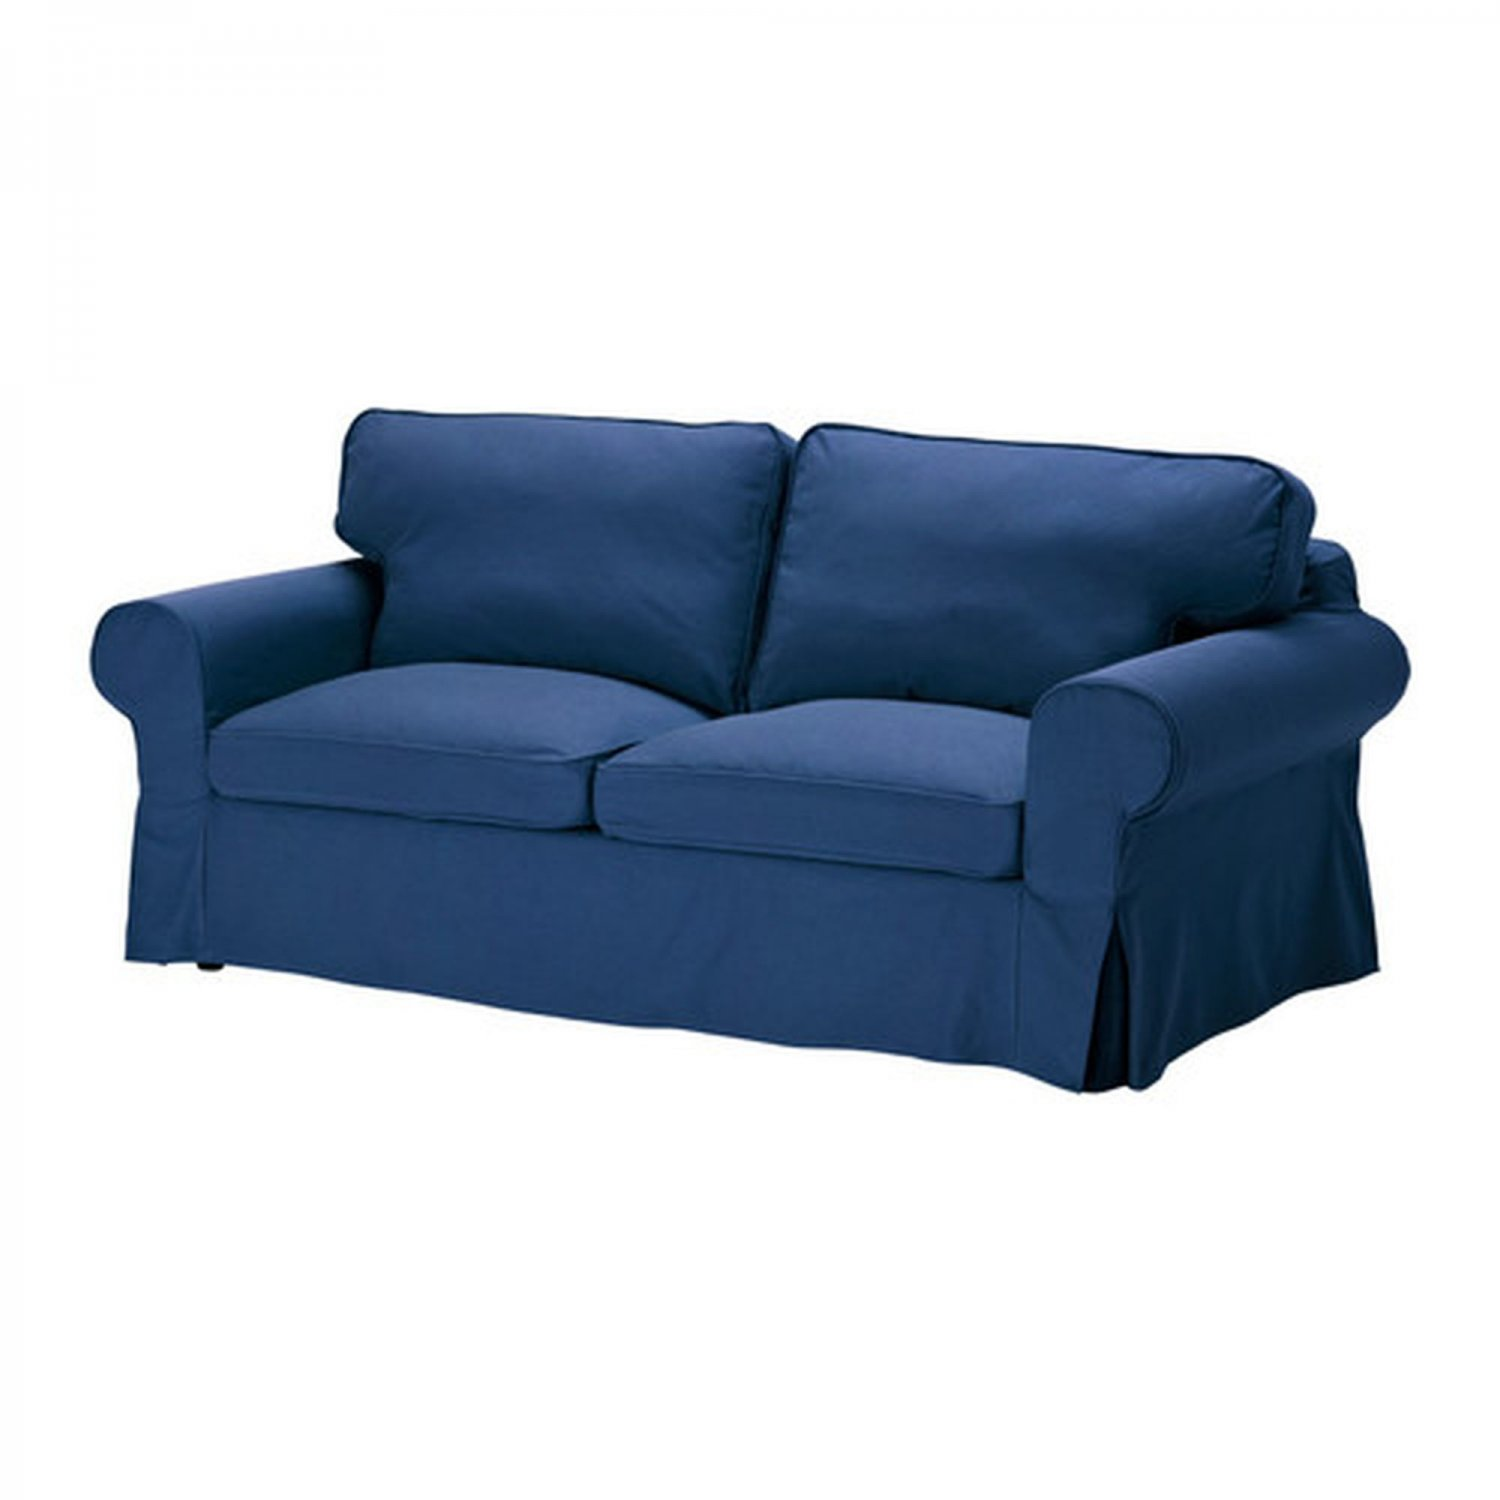 Ikea ektorp 2 seat sofa cover loveseat slipcover idemo blue Loveseat futon cover